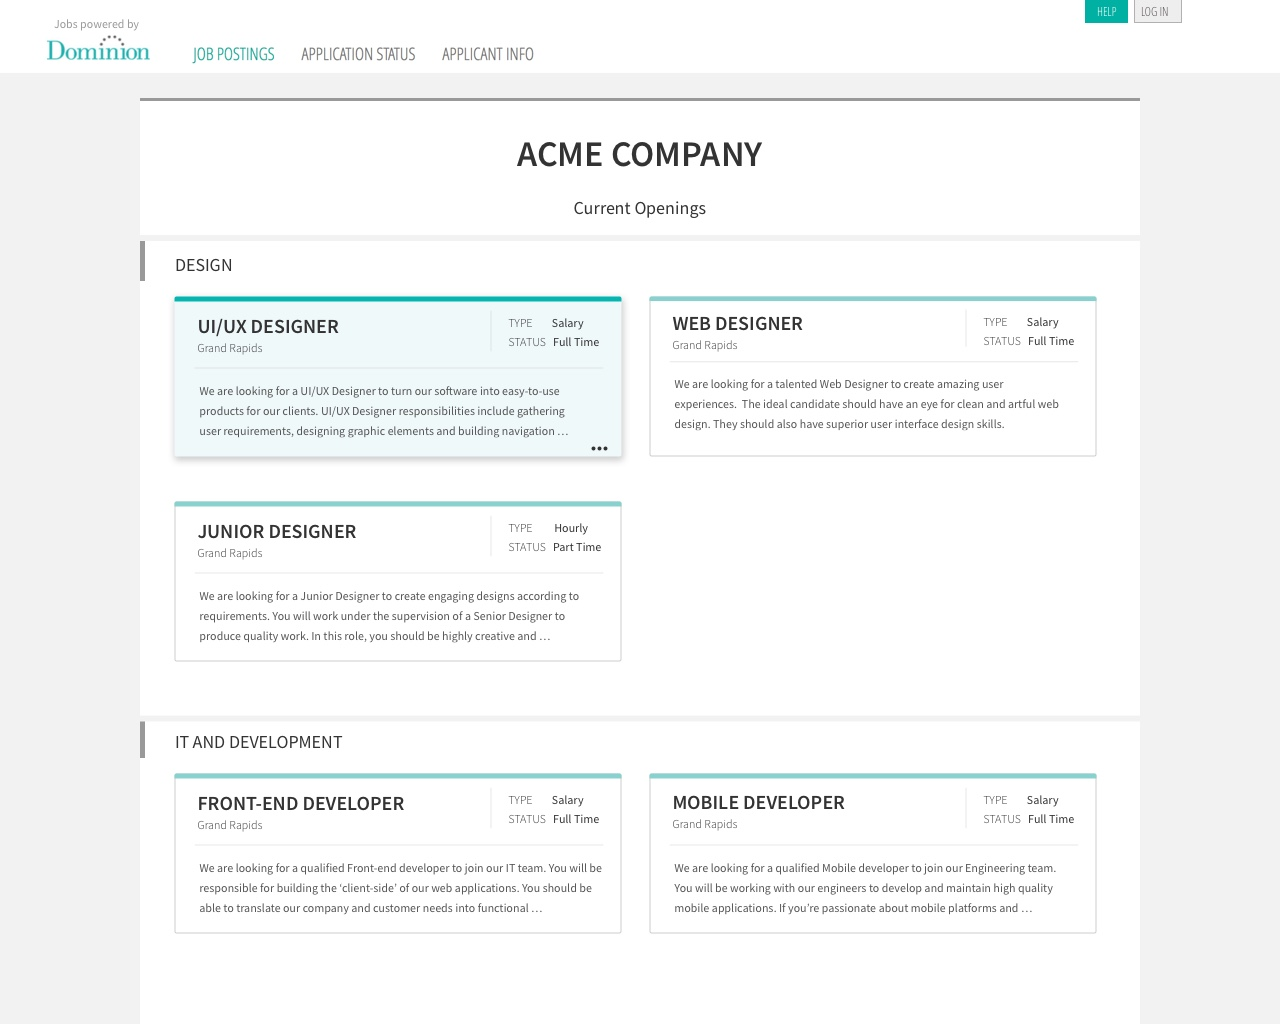 The Job Board will display all current openings in an easy to navigate screen.